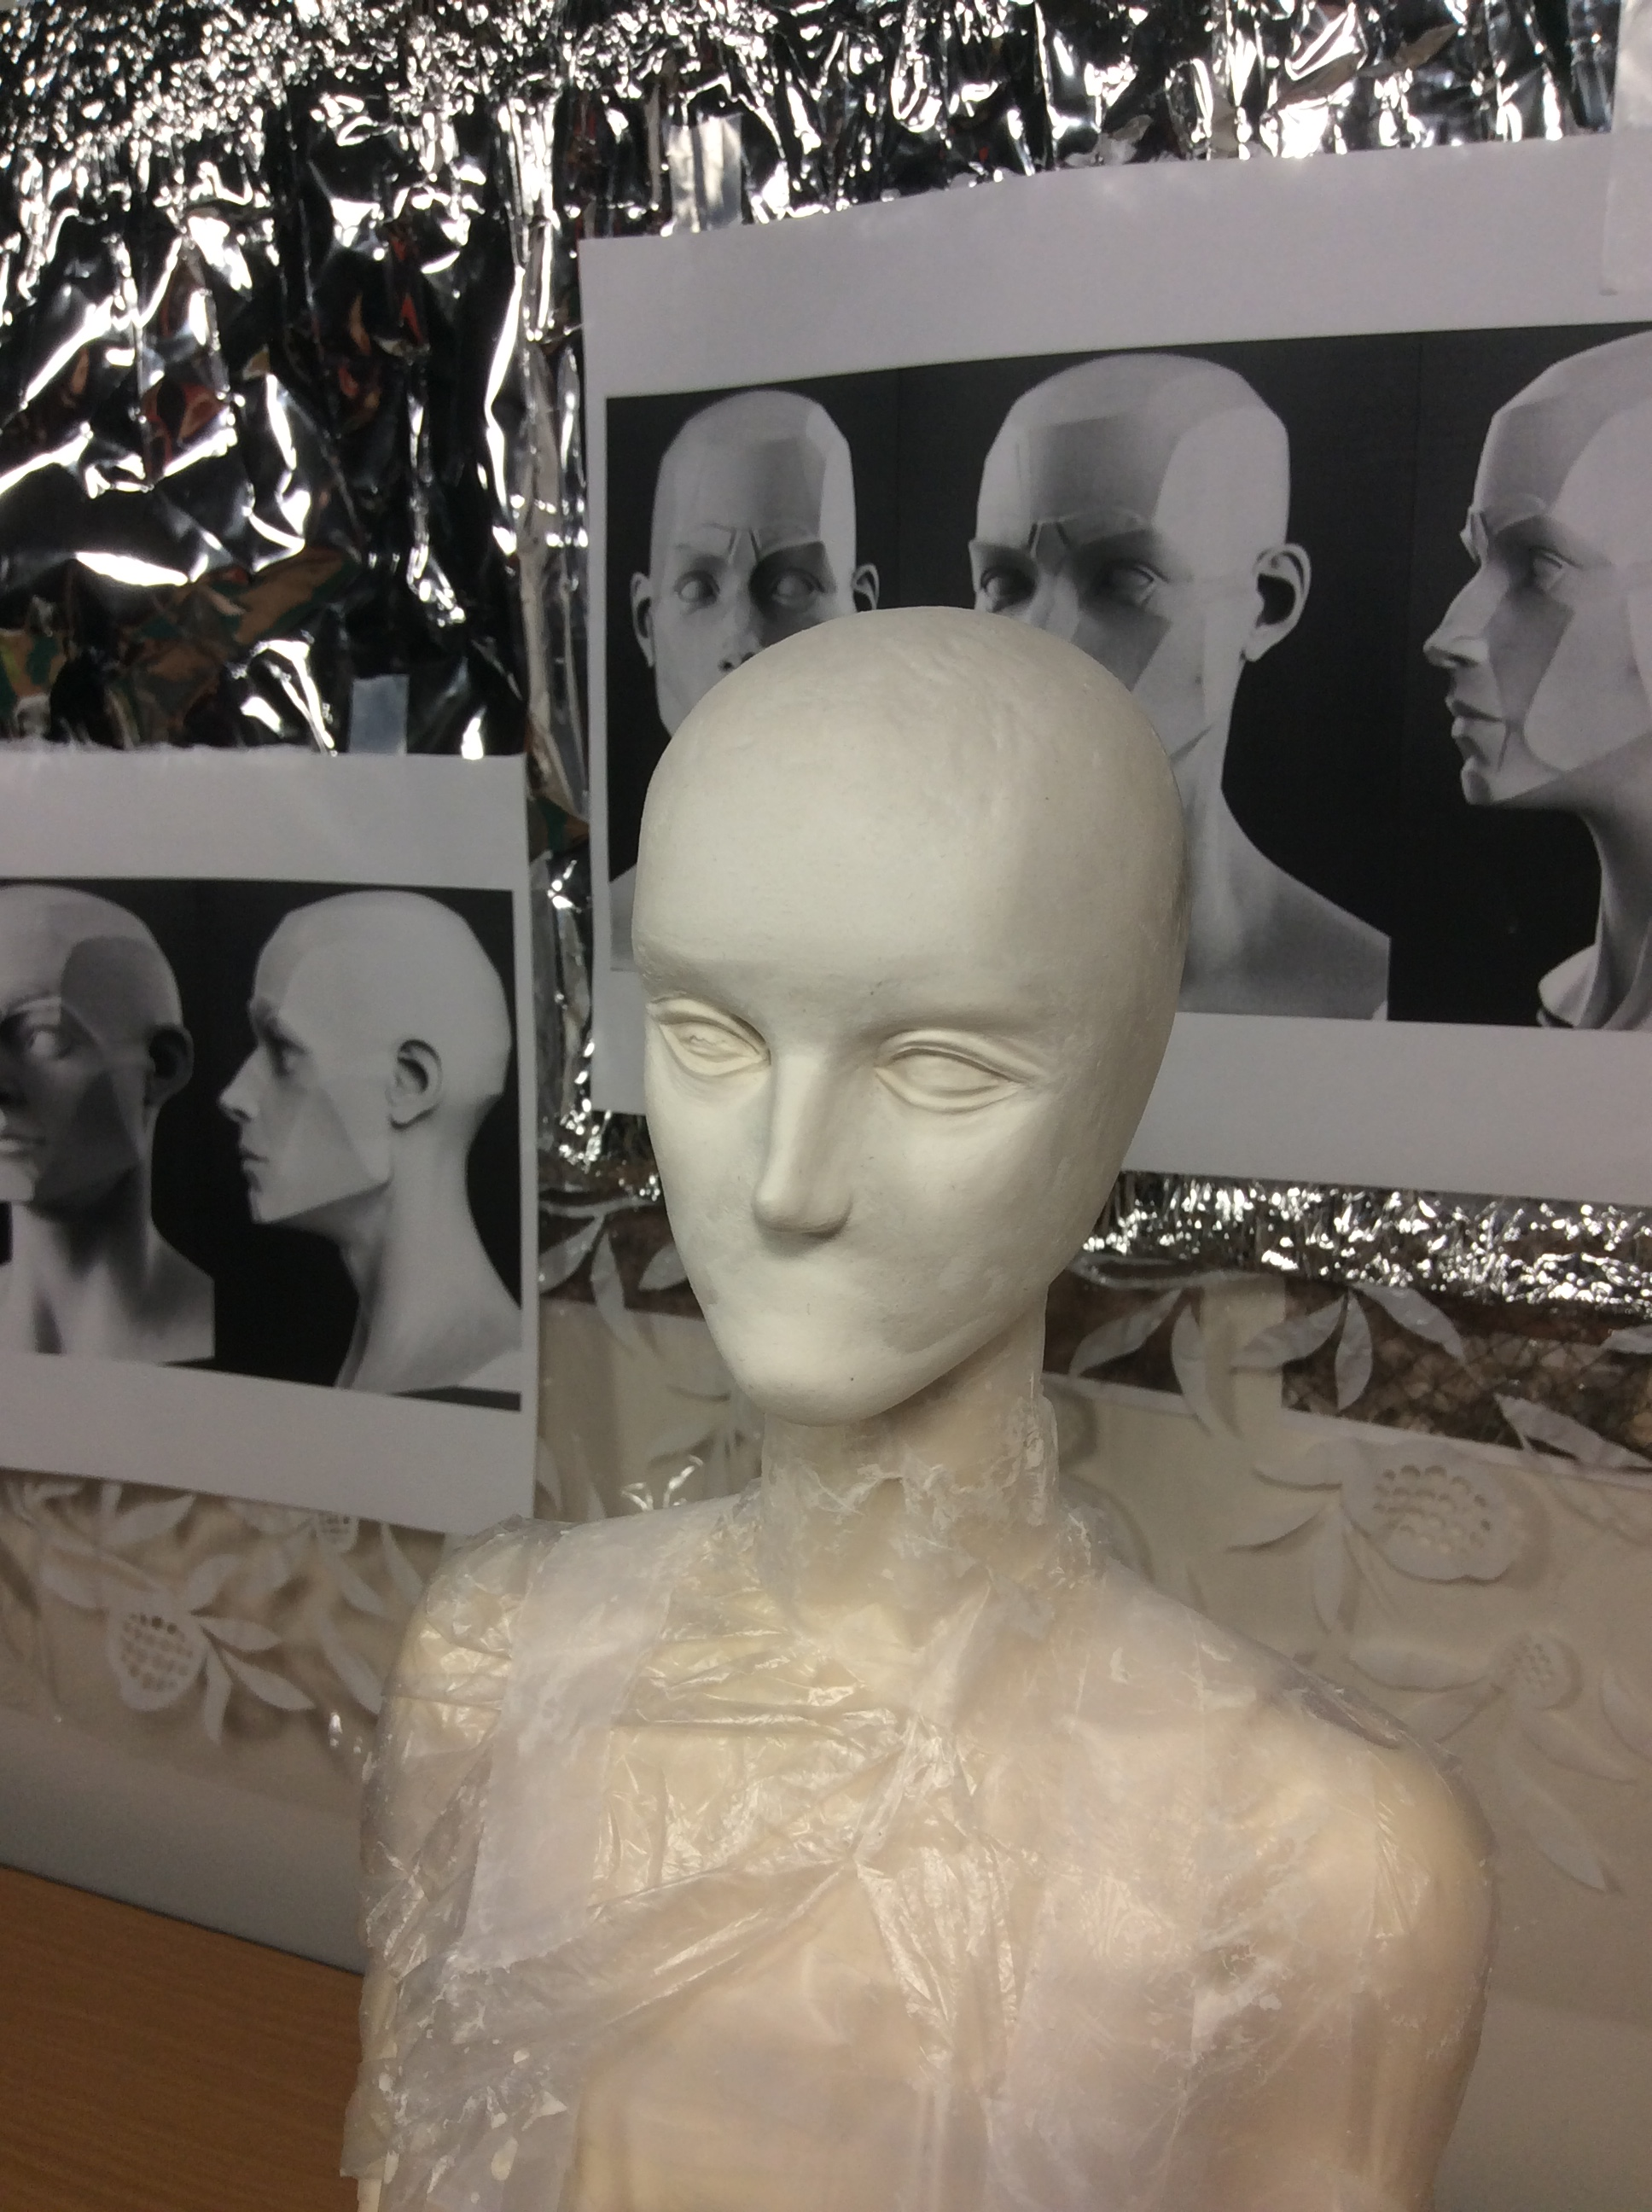 jemse---my-first-doll-head-making-progress-diary-part-2_31602478173_o